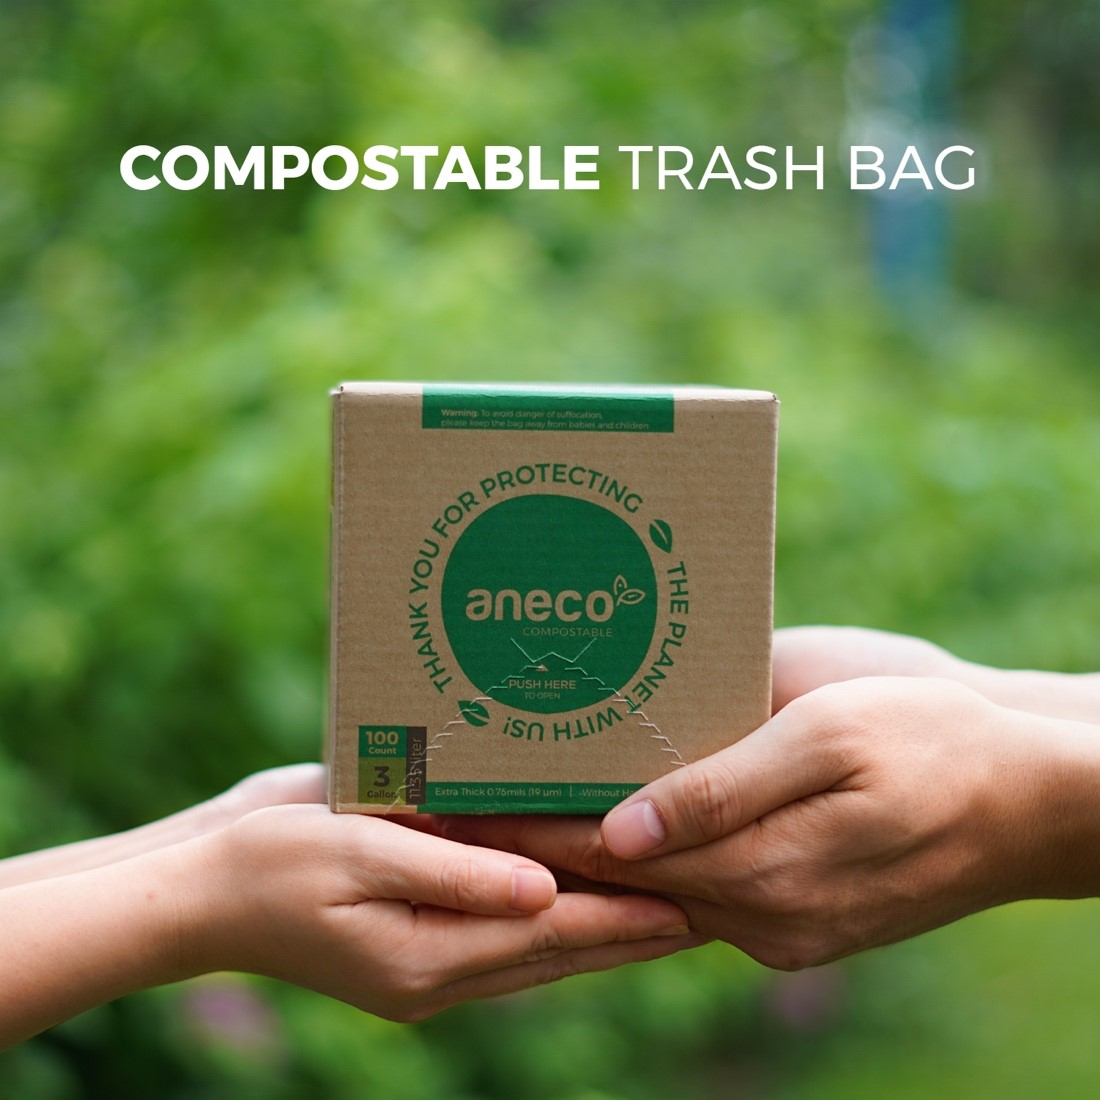 100% compostable products AnEco are now available on Amazon US